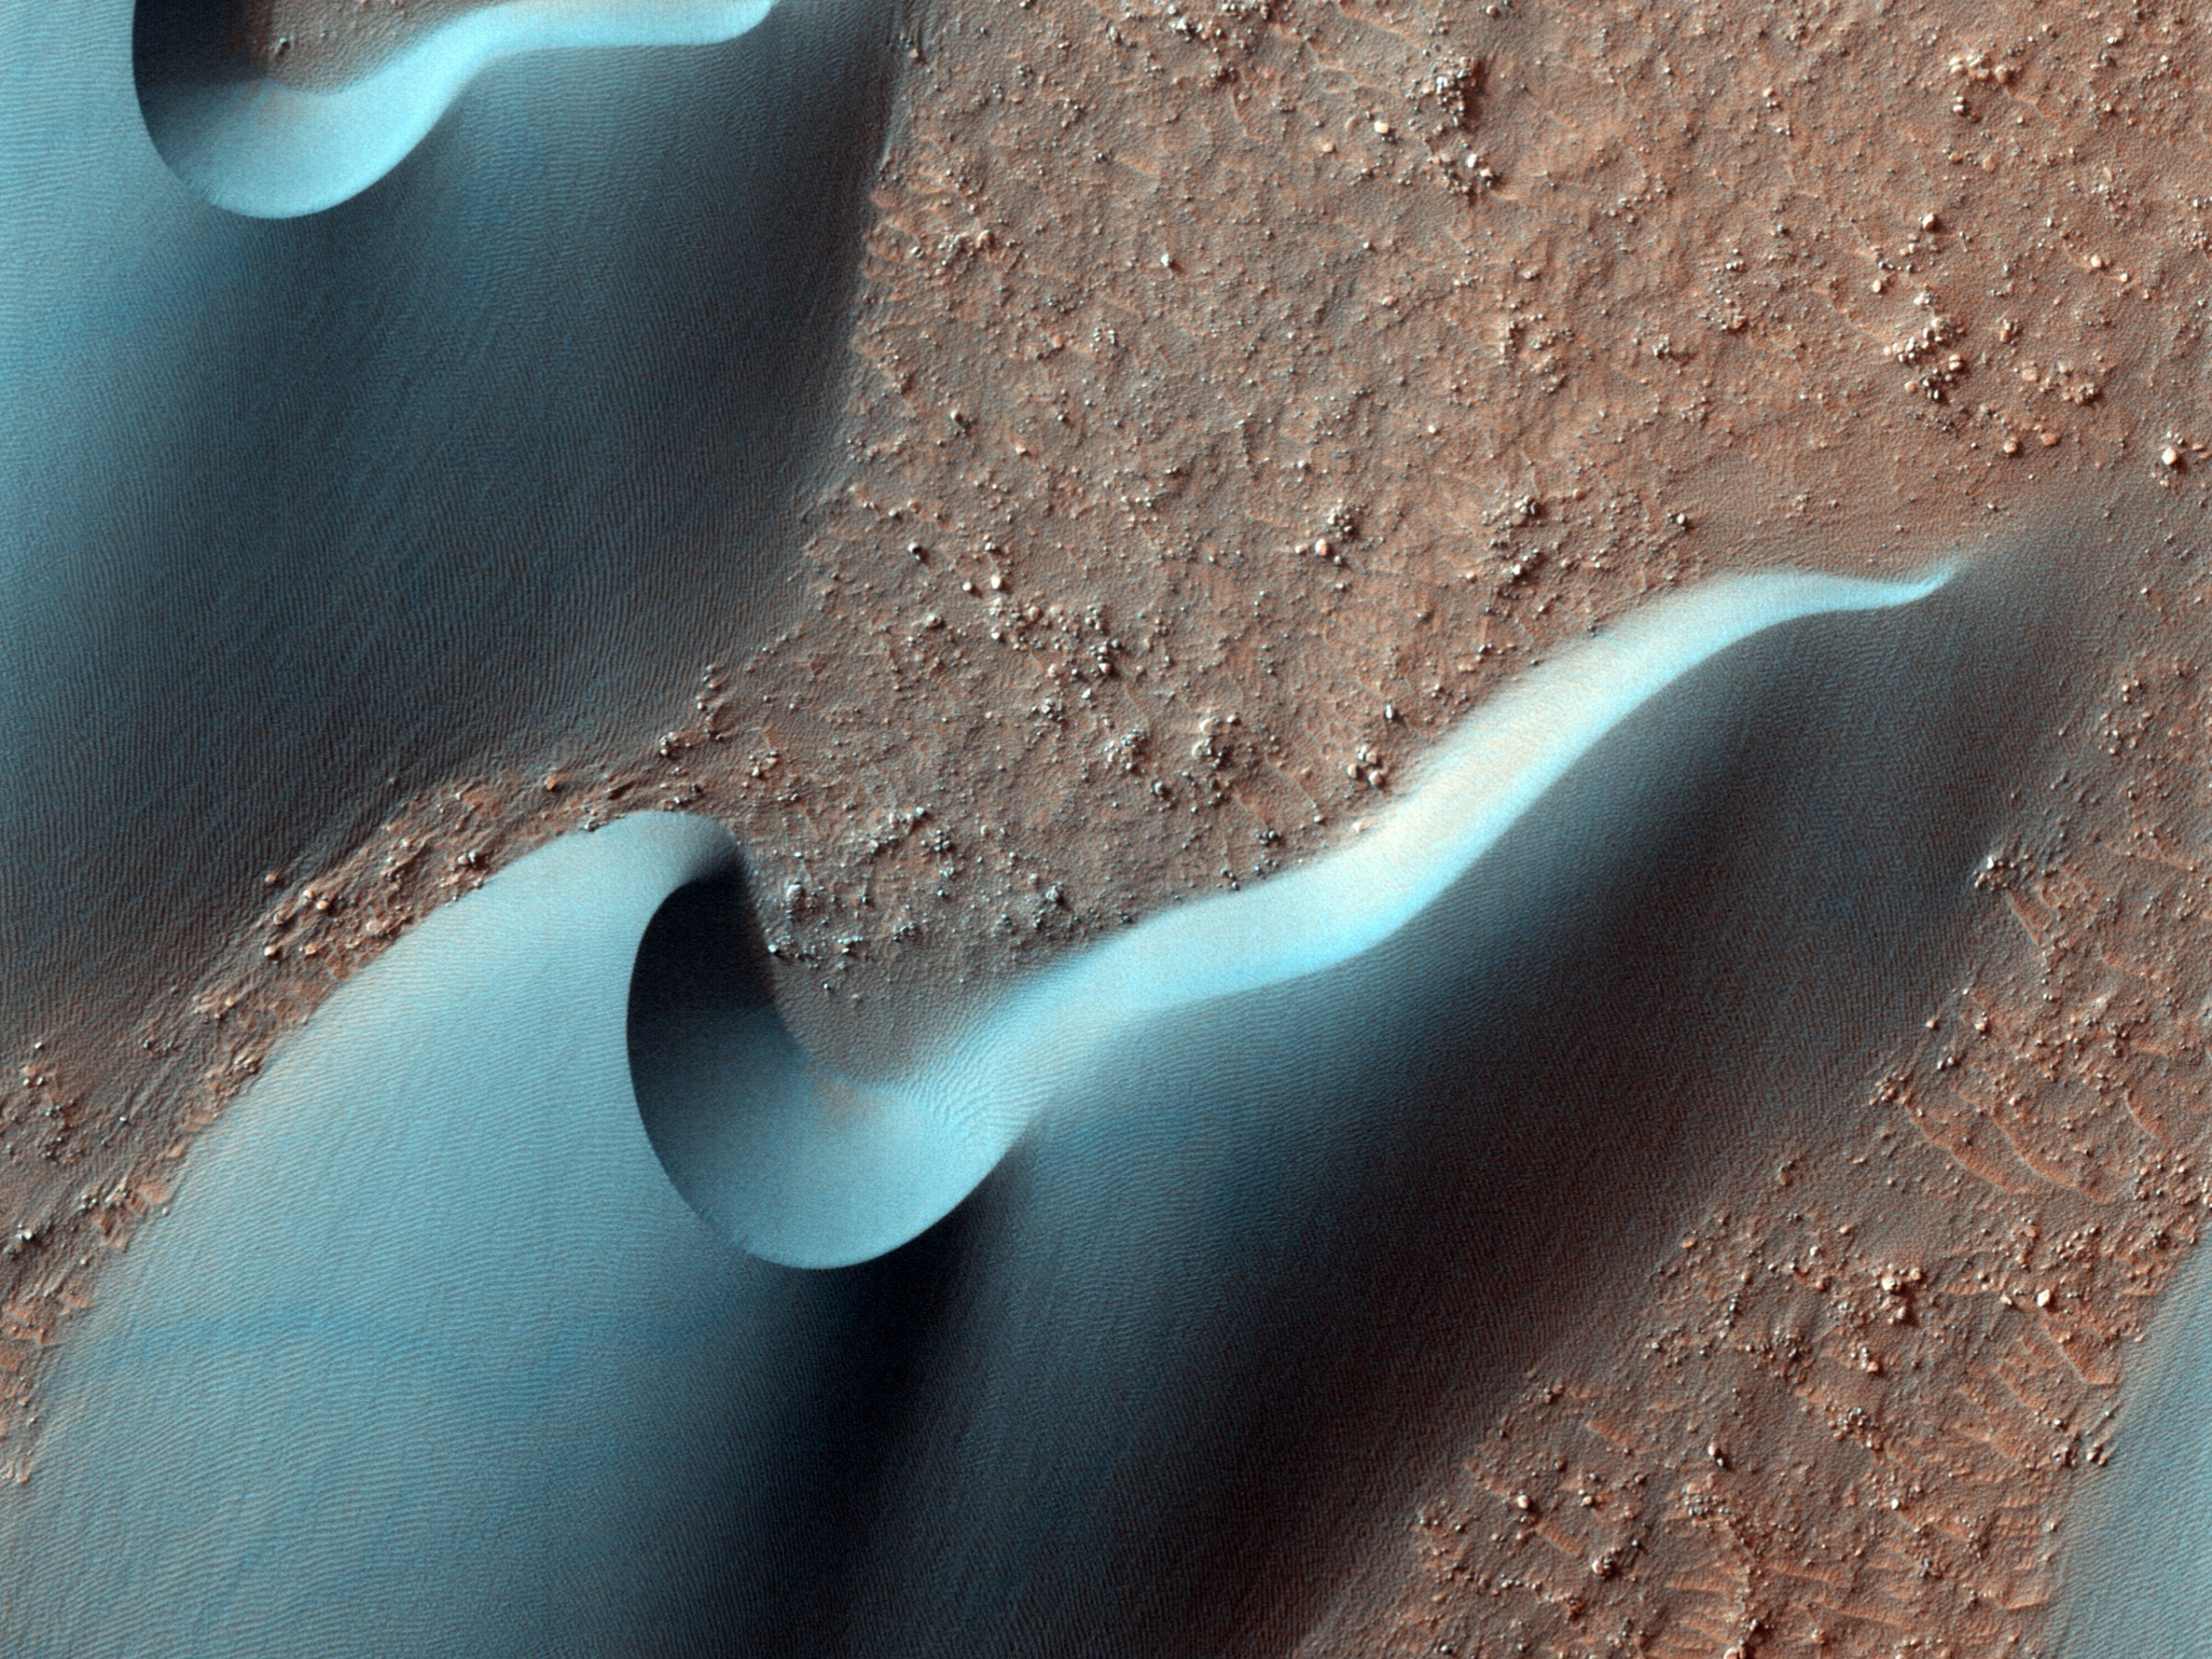 mars-sand-dunes-mro-hirise-nasa-university-arizona